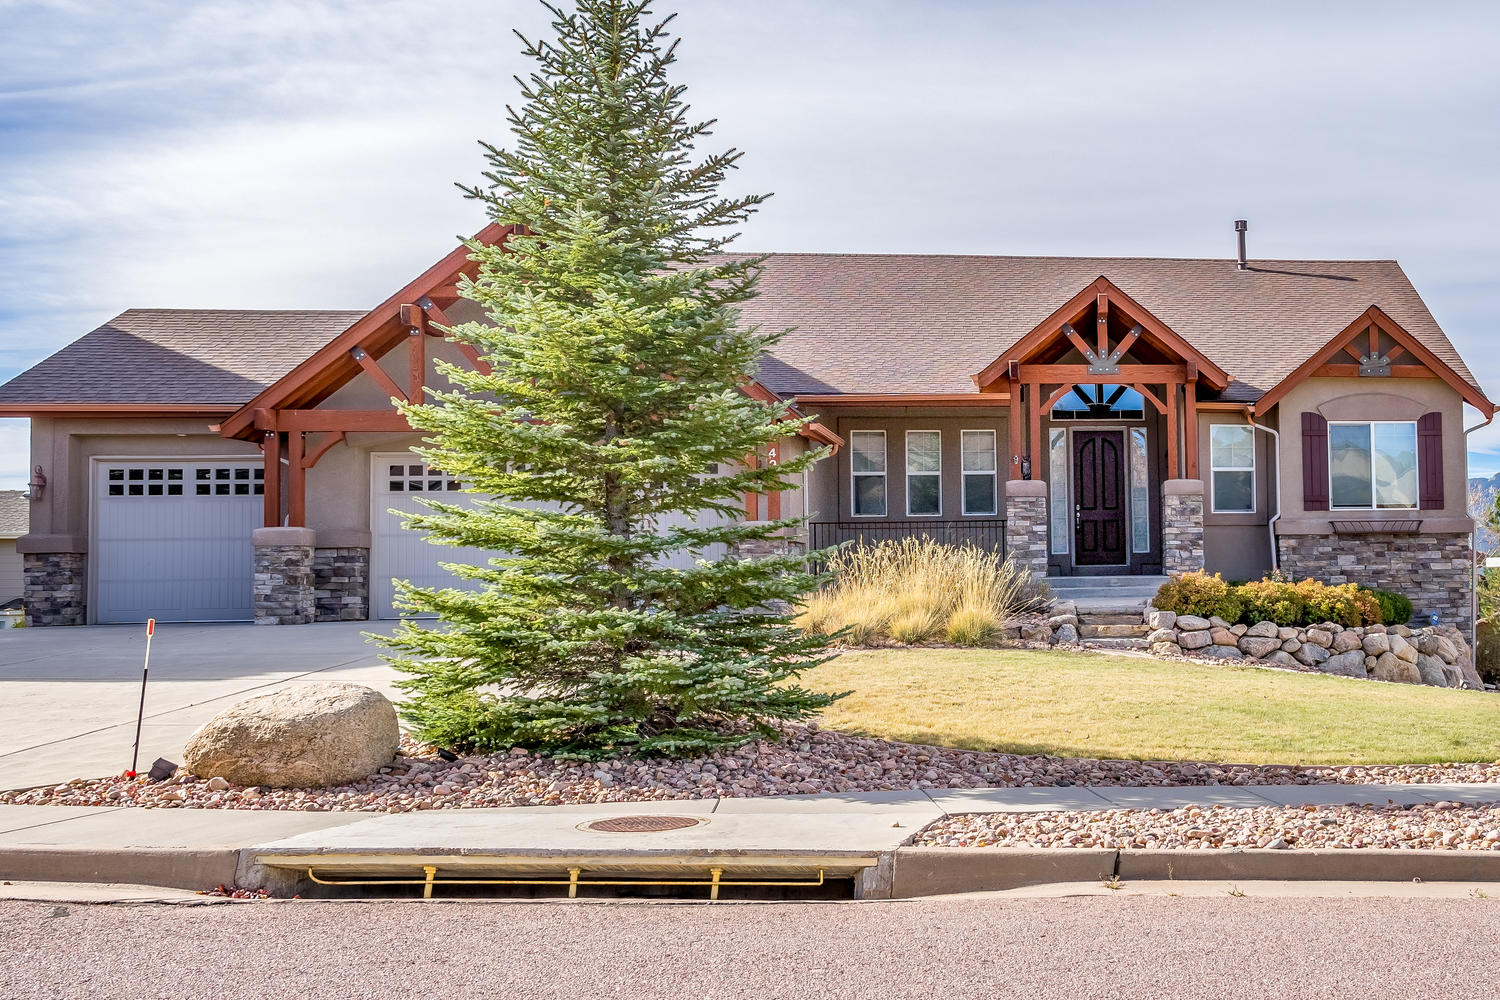 491 Venison Creek Dr, Monument, CO 80132